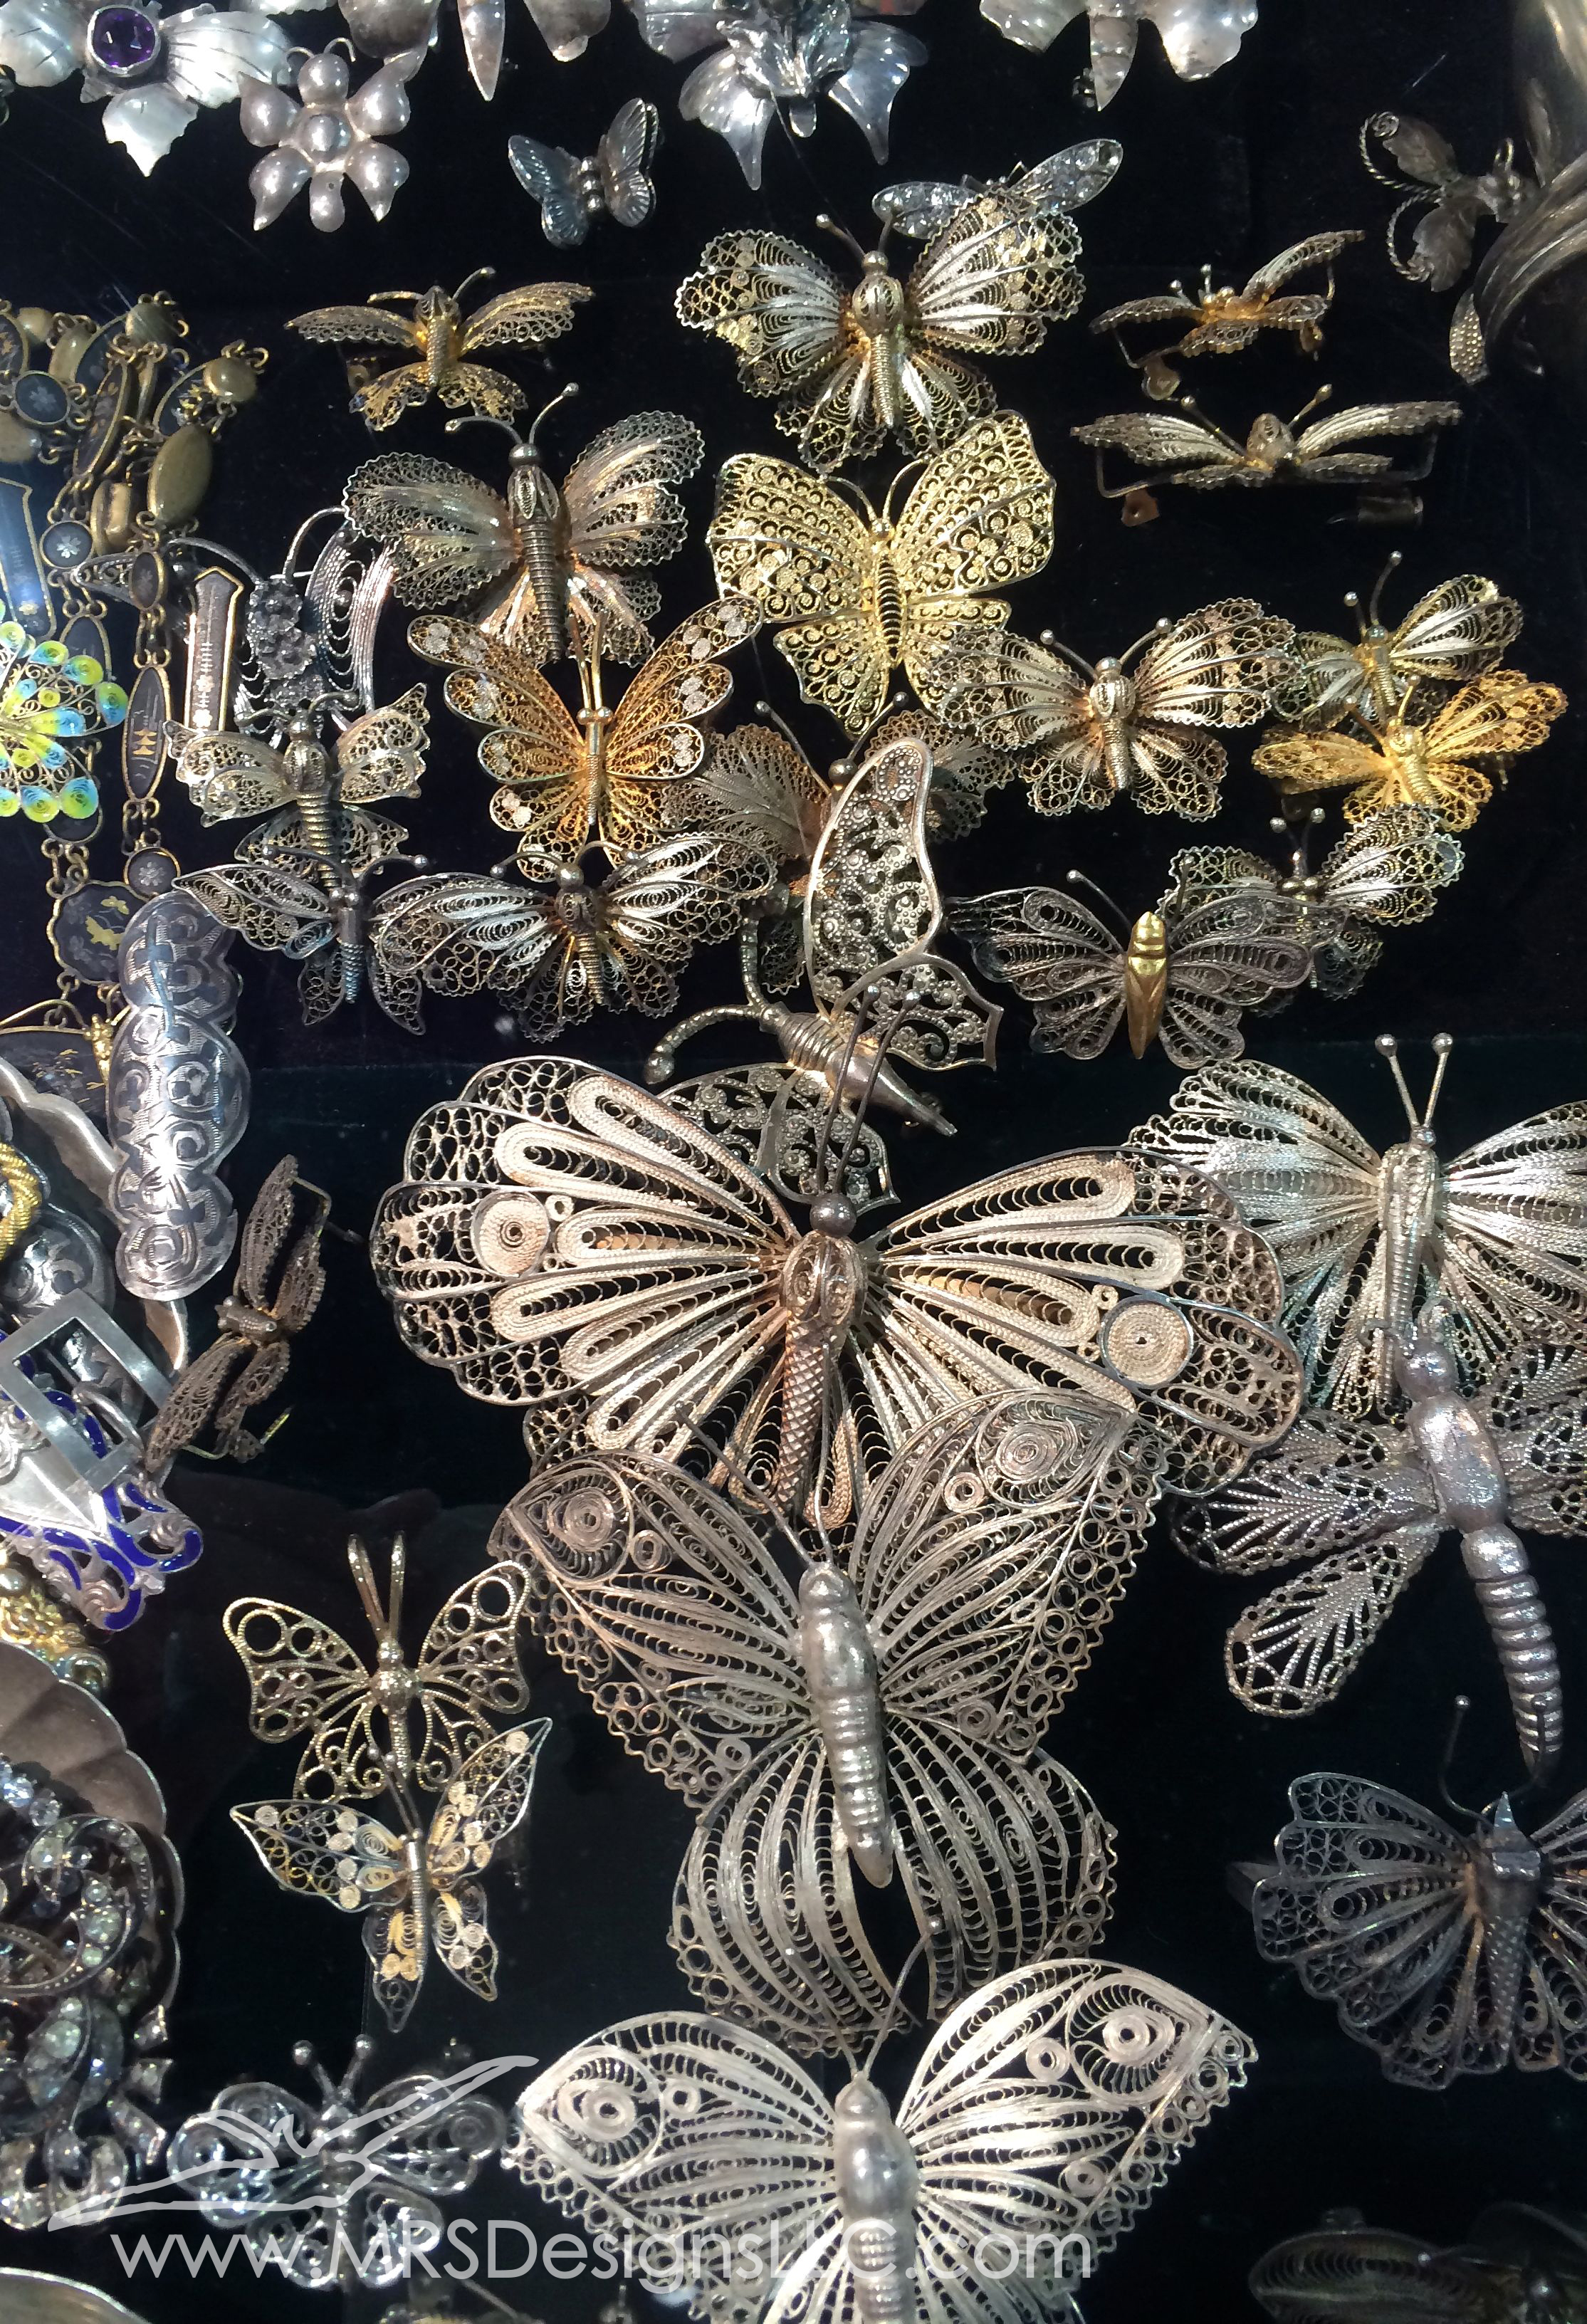 MRS Designs Vintage Butterfly Brooches at Bead and Button Show